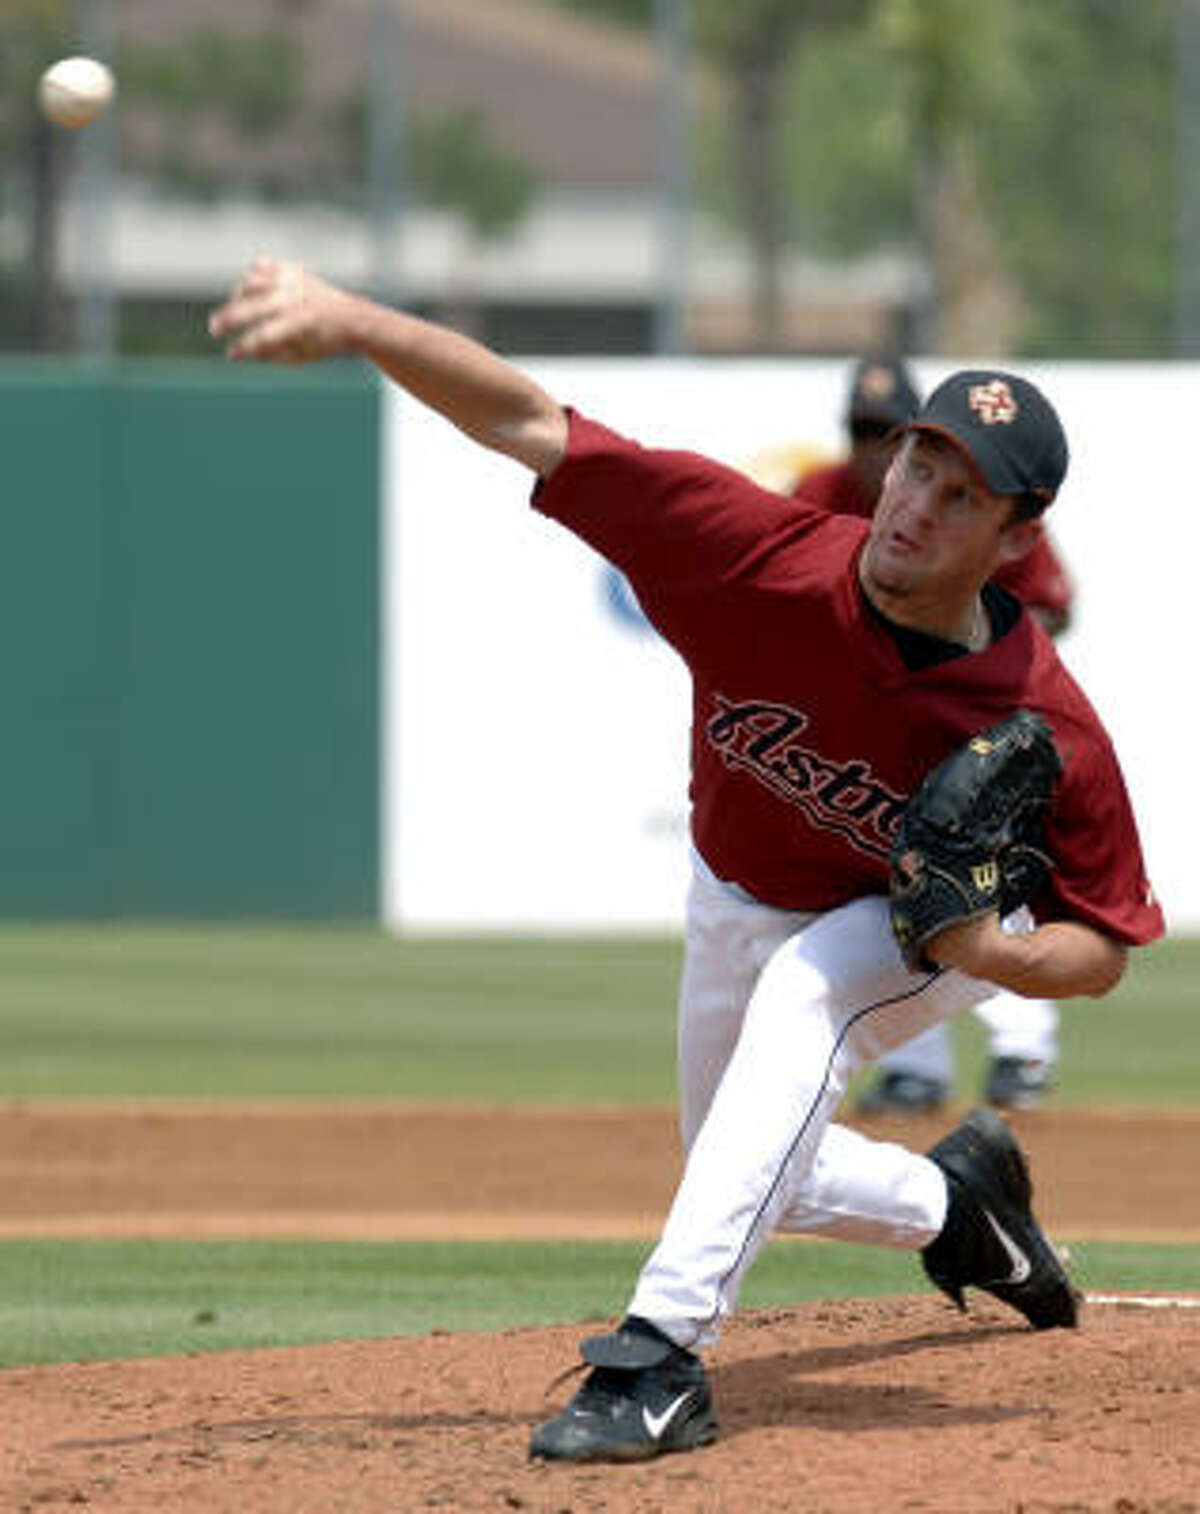 Astros starting pitcher Roy Oswalt throws during the second inning.